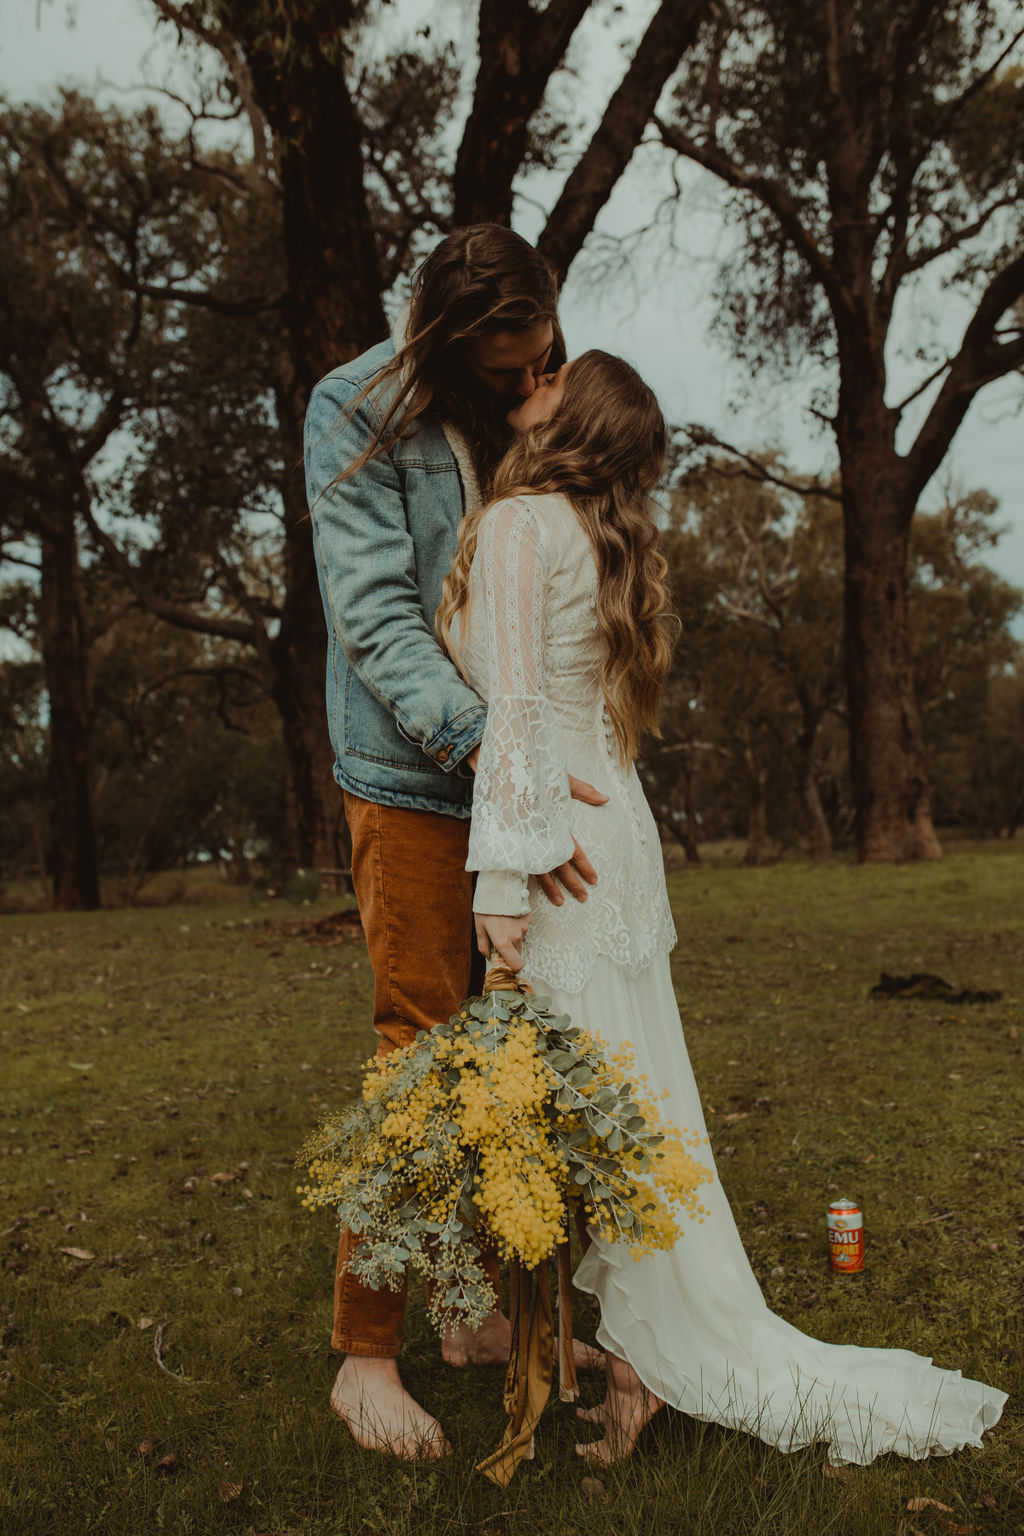 sullivan & co photography perth weddings retro hipster vintage bridal gown floral design styling